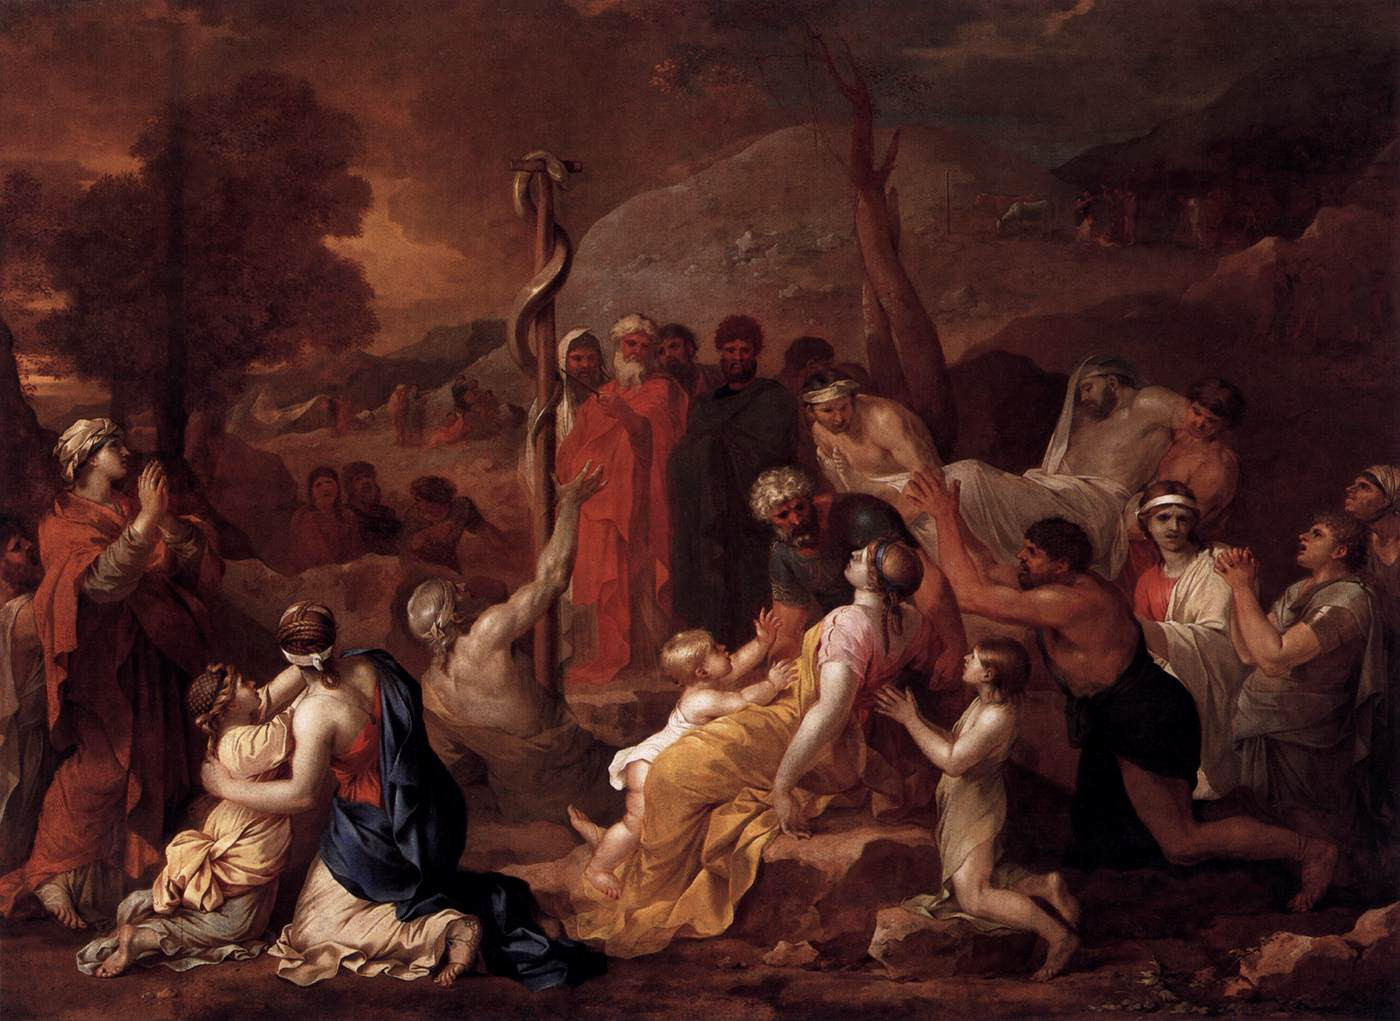 """""""TheLordsent fiery serpents among the people andthey bit the people, so thatmany people of Israel died.So the people came to Moses and said, """"We have sinned, because we have spoken against theLordand you;intercede with theLord, that He may remove the serpents from us."""" And Moses interceded for the people.Then theLordsaid to Moses, """"Make afieryserpent, and set it on a standard; and it shall come about, that everyone who is bitten, when he looks at it, he will live.""""And Moses made abronze serpent and set it on the standard; and it came about, that if a serpent bit any man, when he looked to the bronze serpent, he lived."""" Numbers 21:6-9  Note that the serpent-entwined rod also appears in the mythology of the Greek godAsclepius, a deity associated with healing and medicine. The symbol has continued to be used in modern times, especially in medicine and health care."""